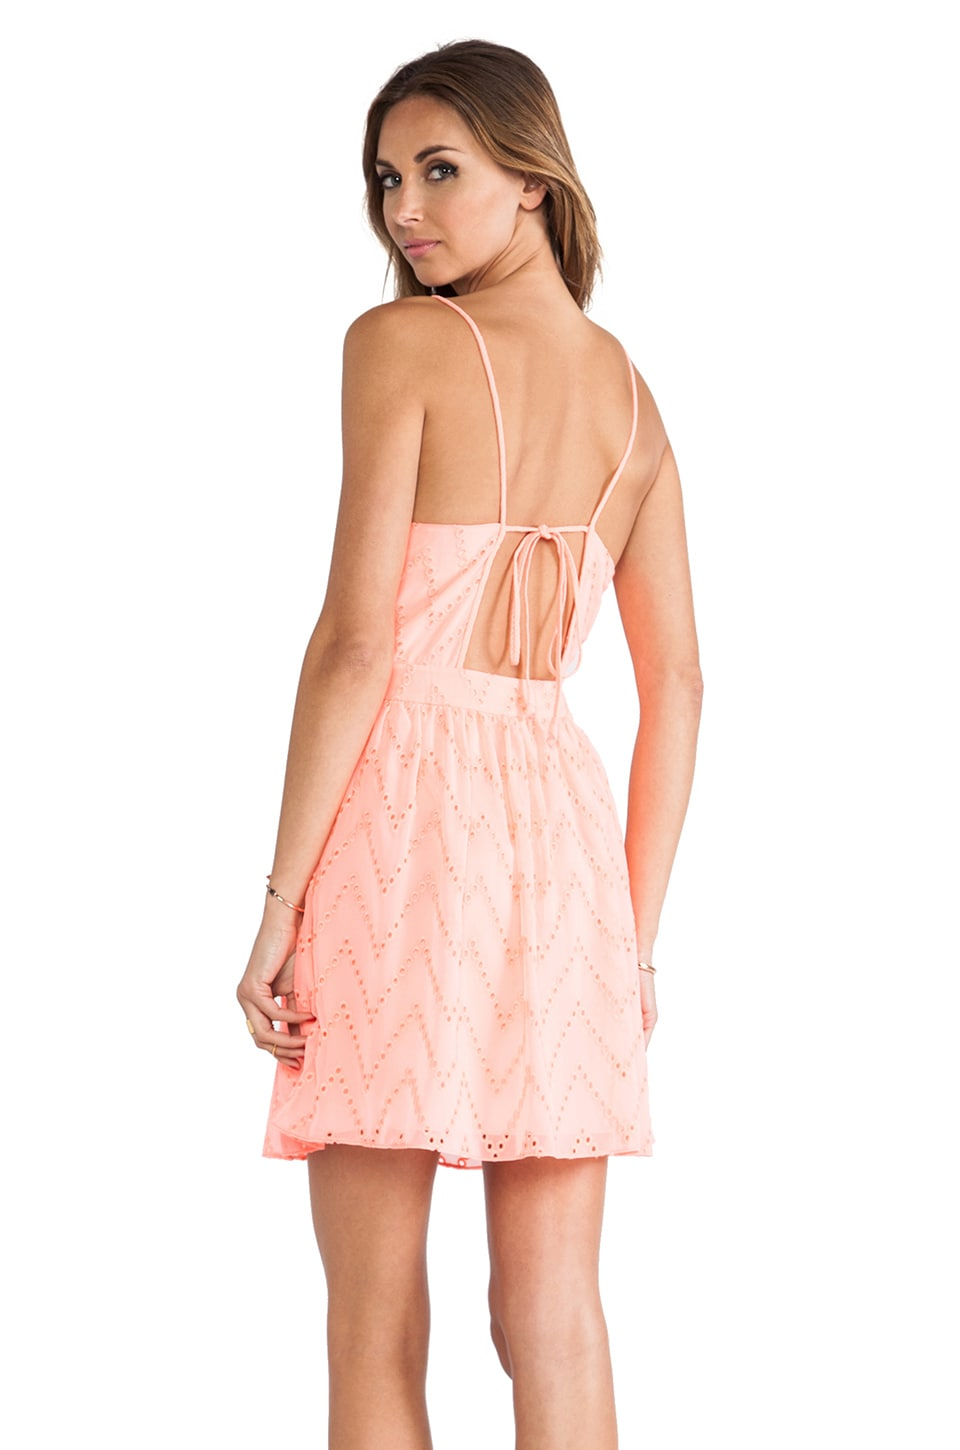 Dolce Vita Caliban Dress in Peach